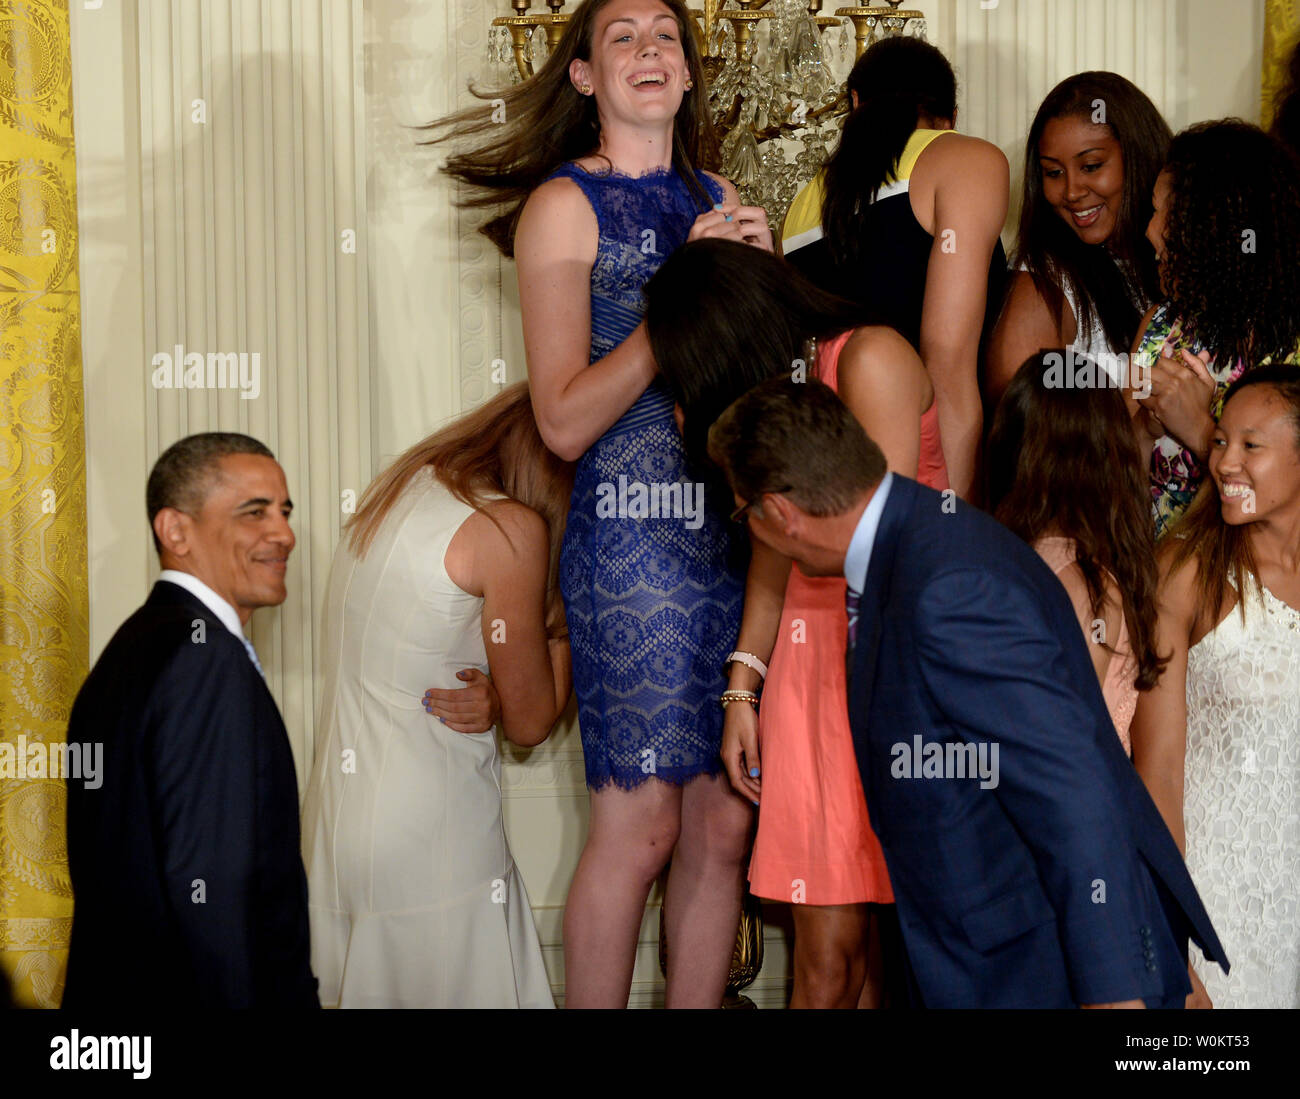 U.S. President Barack Obama smiles as he see that University of Connecticut star basketball player Stefanie Dolson (white dress) is all right but embarrassed after she slipped off the podium riser while Obama was shaking hands with head coach Geno Auriemma (R) during a presentation in the East Room of the White House in Washington, DC on June 9, 2014.  Obama honored both the women's and men's basketball teams from the University of Connecticut as they both won the NCAA collegiate basketball championships for the 2013-2014 season.    UPI/Pat Benic - Stock Image